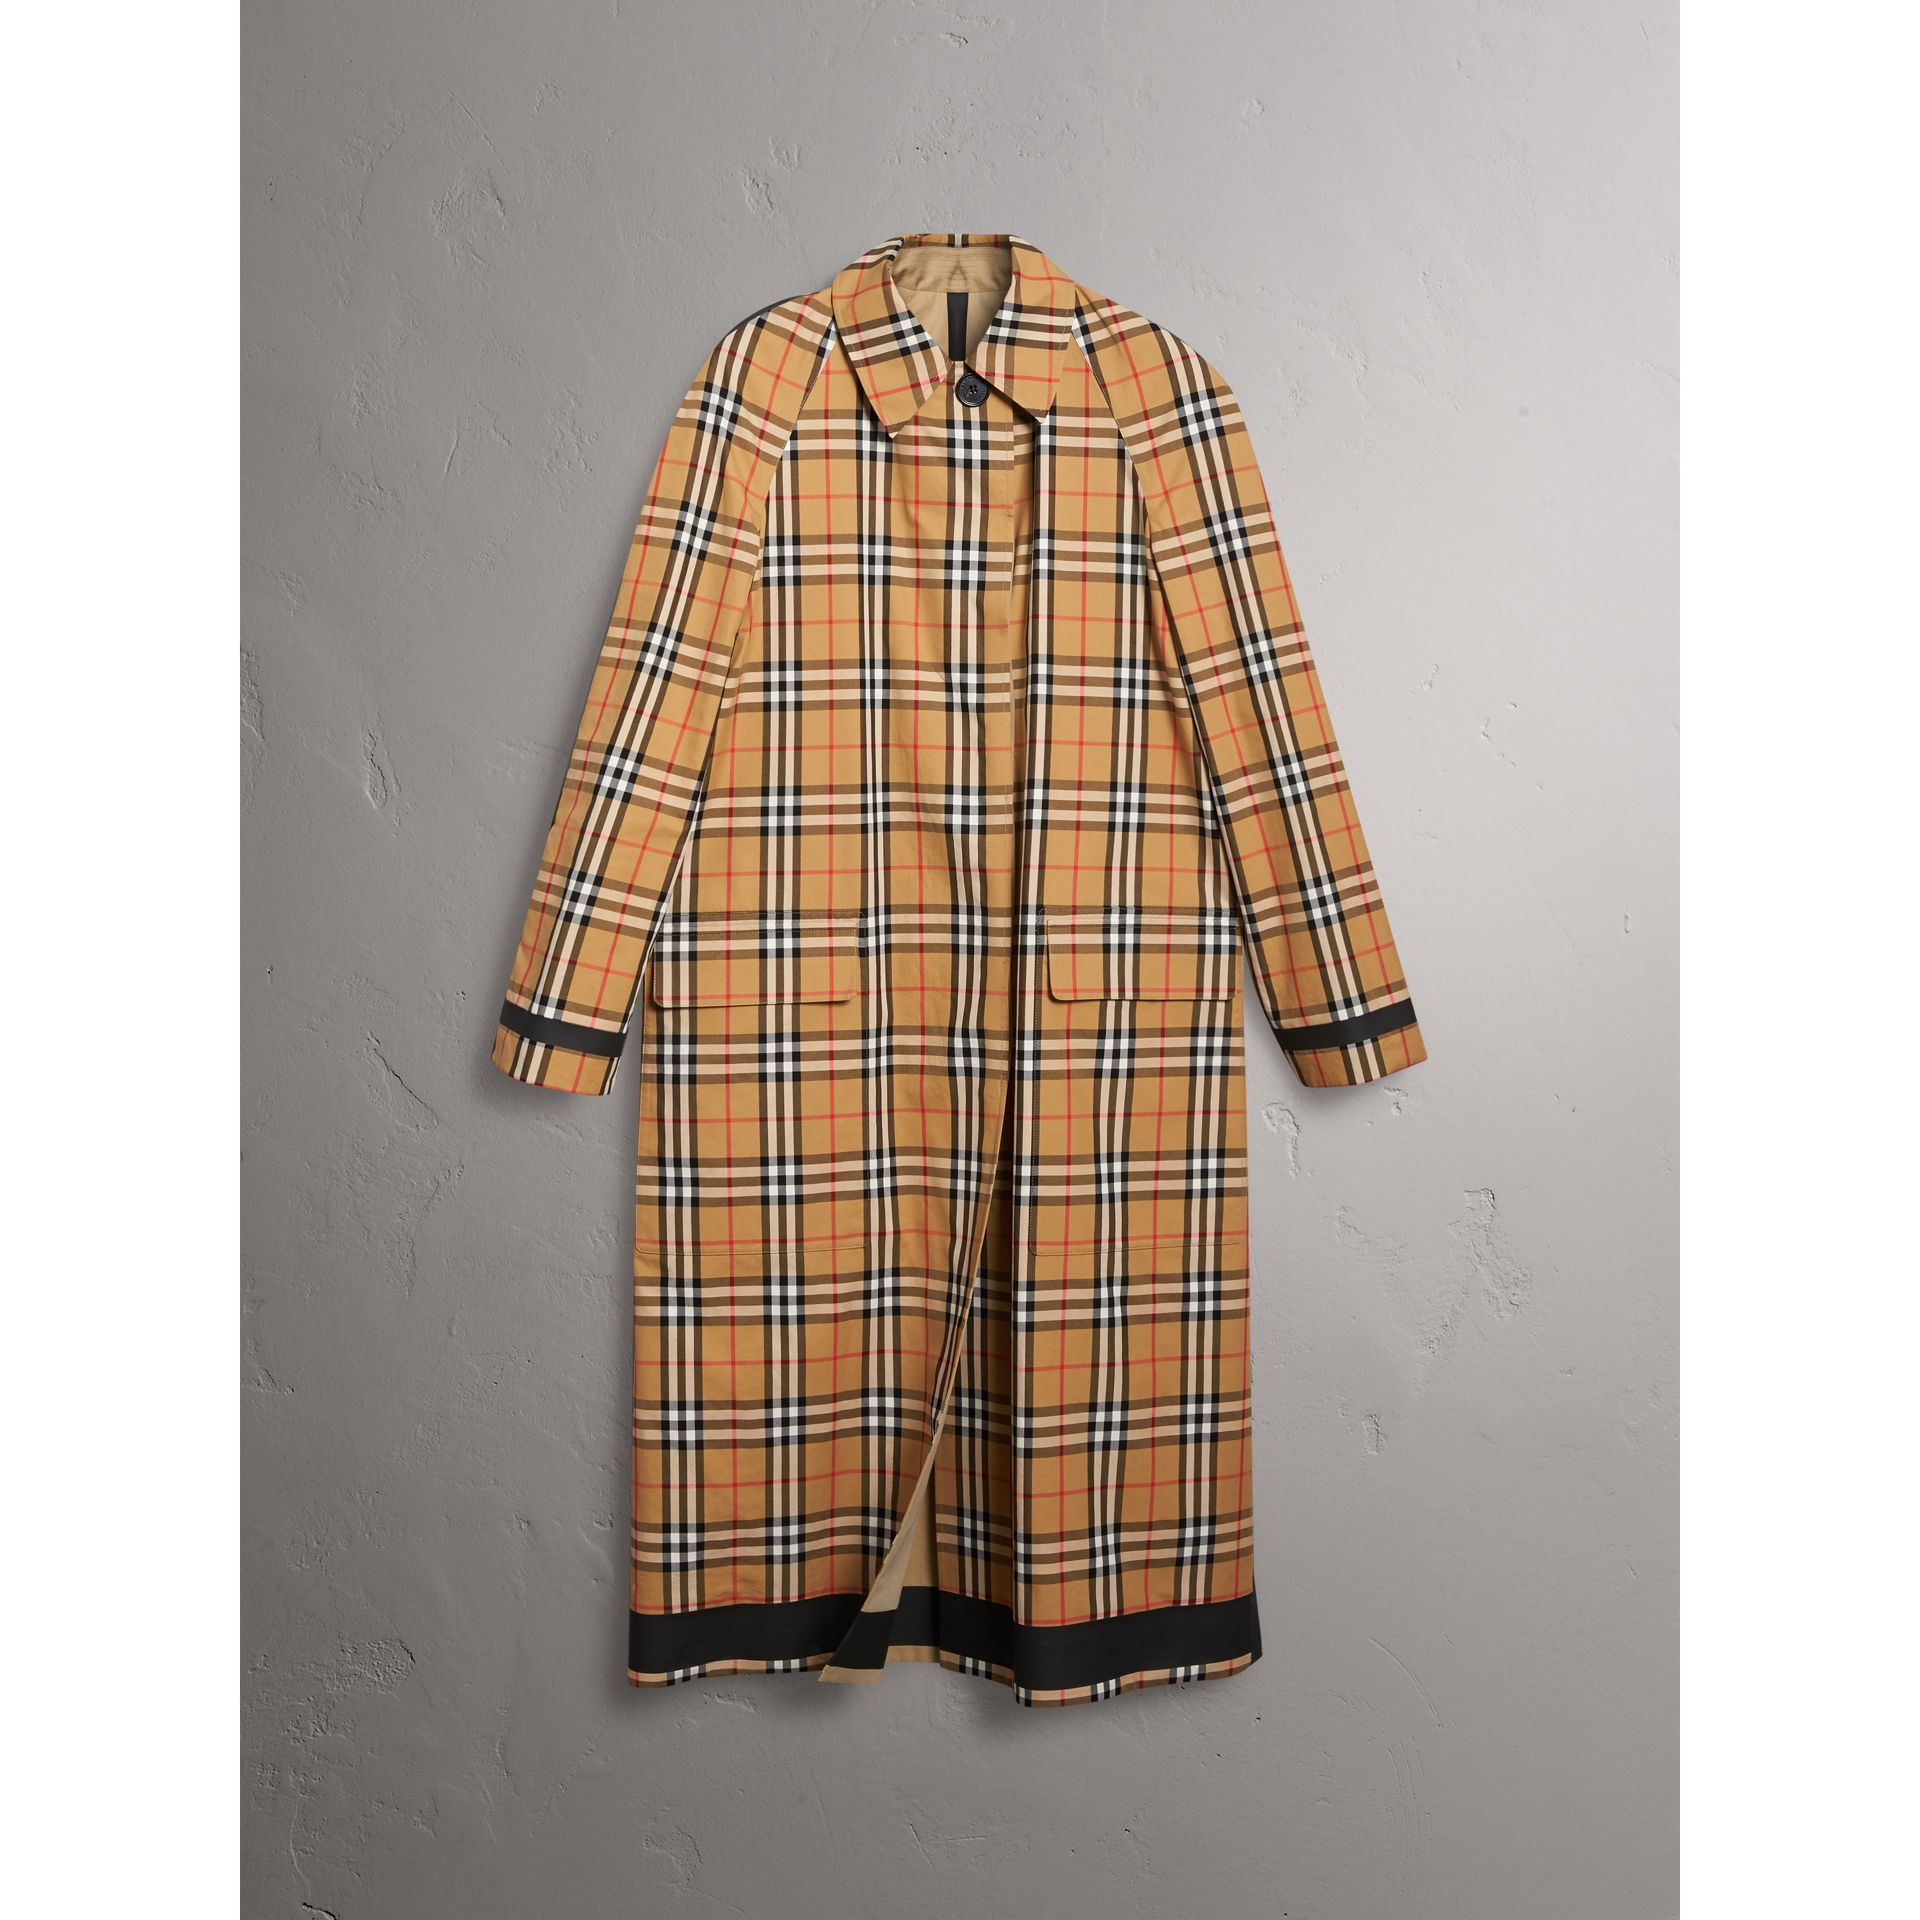 Paletot réversible en gabardine à motif Vintage check (Jaune Antique) - Femme | Burberry - photo de la galerie 3